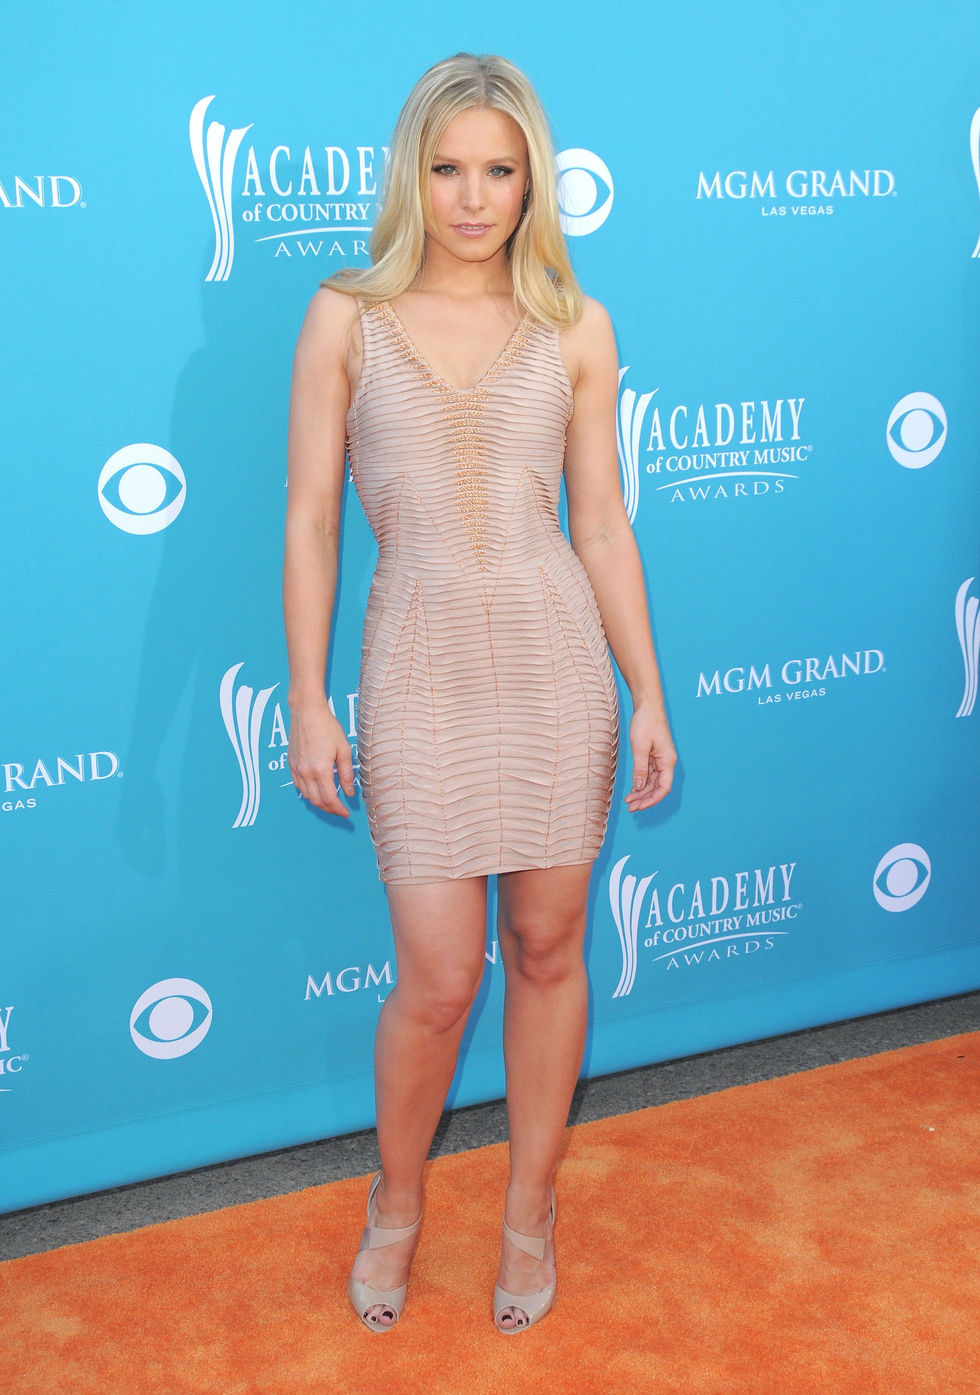 Kristen Bell 2010 : kristen-bell-at-45th-annual-academy-of-country-music-awards-06